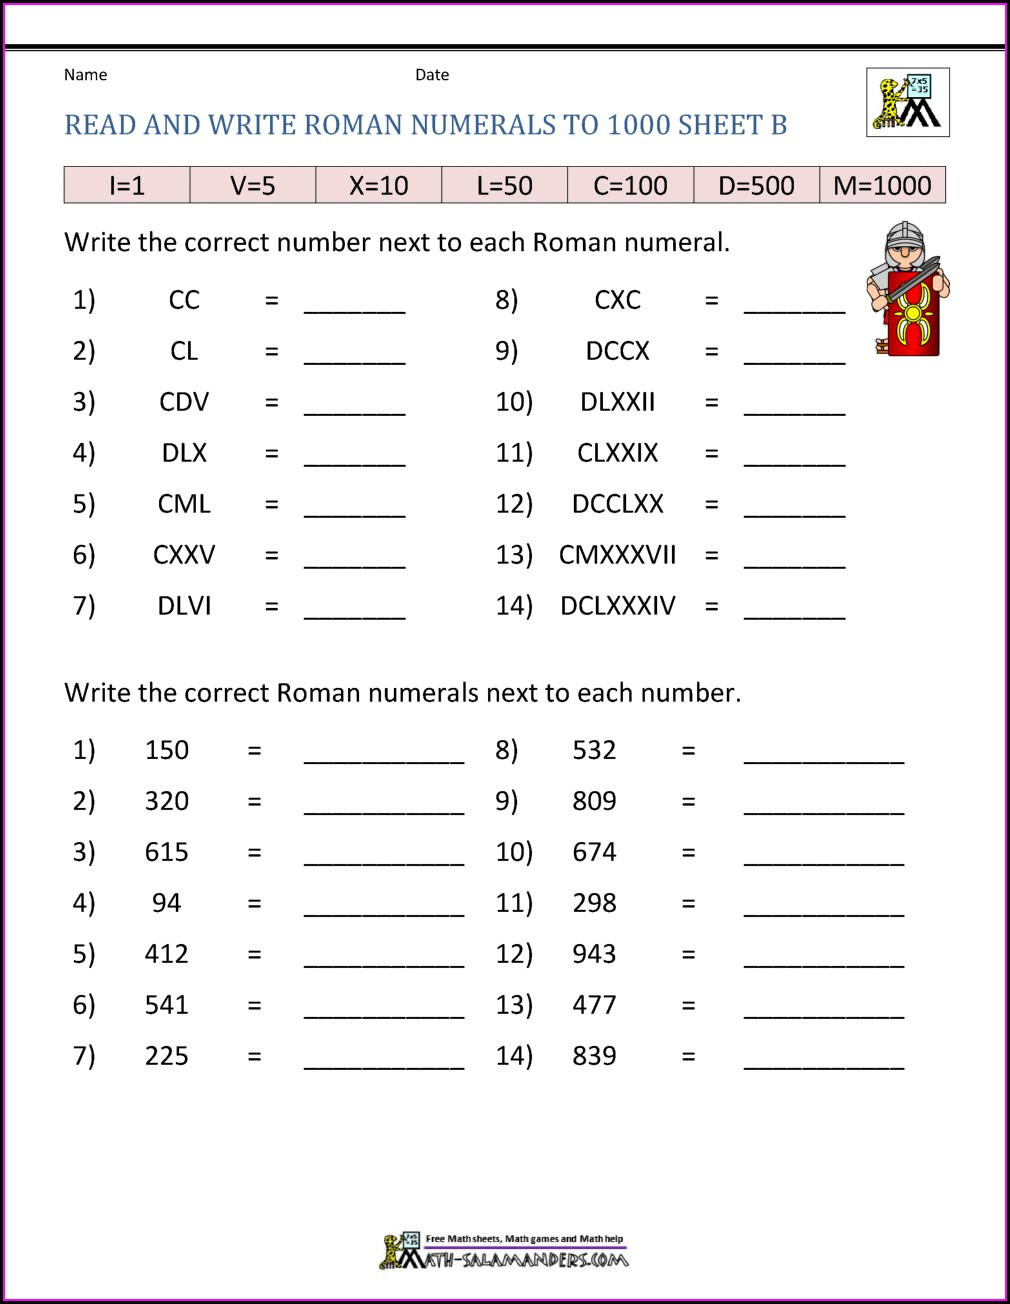 Worksheet On Roman Numerals For Grade 3